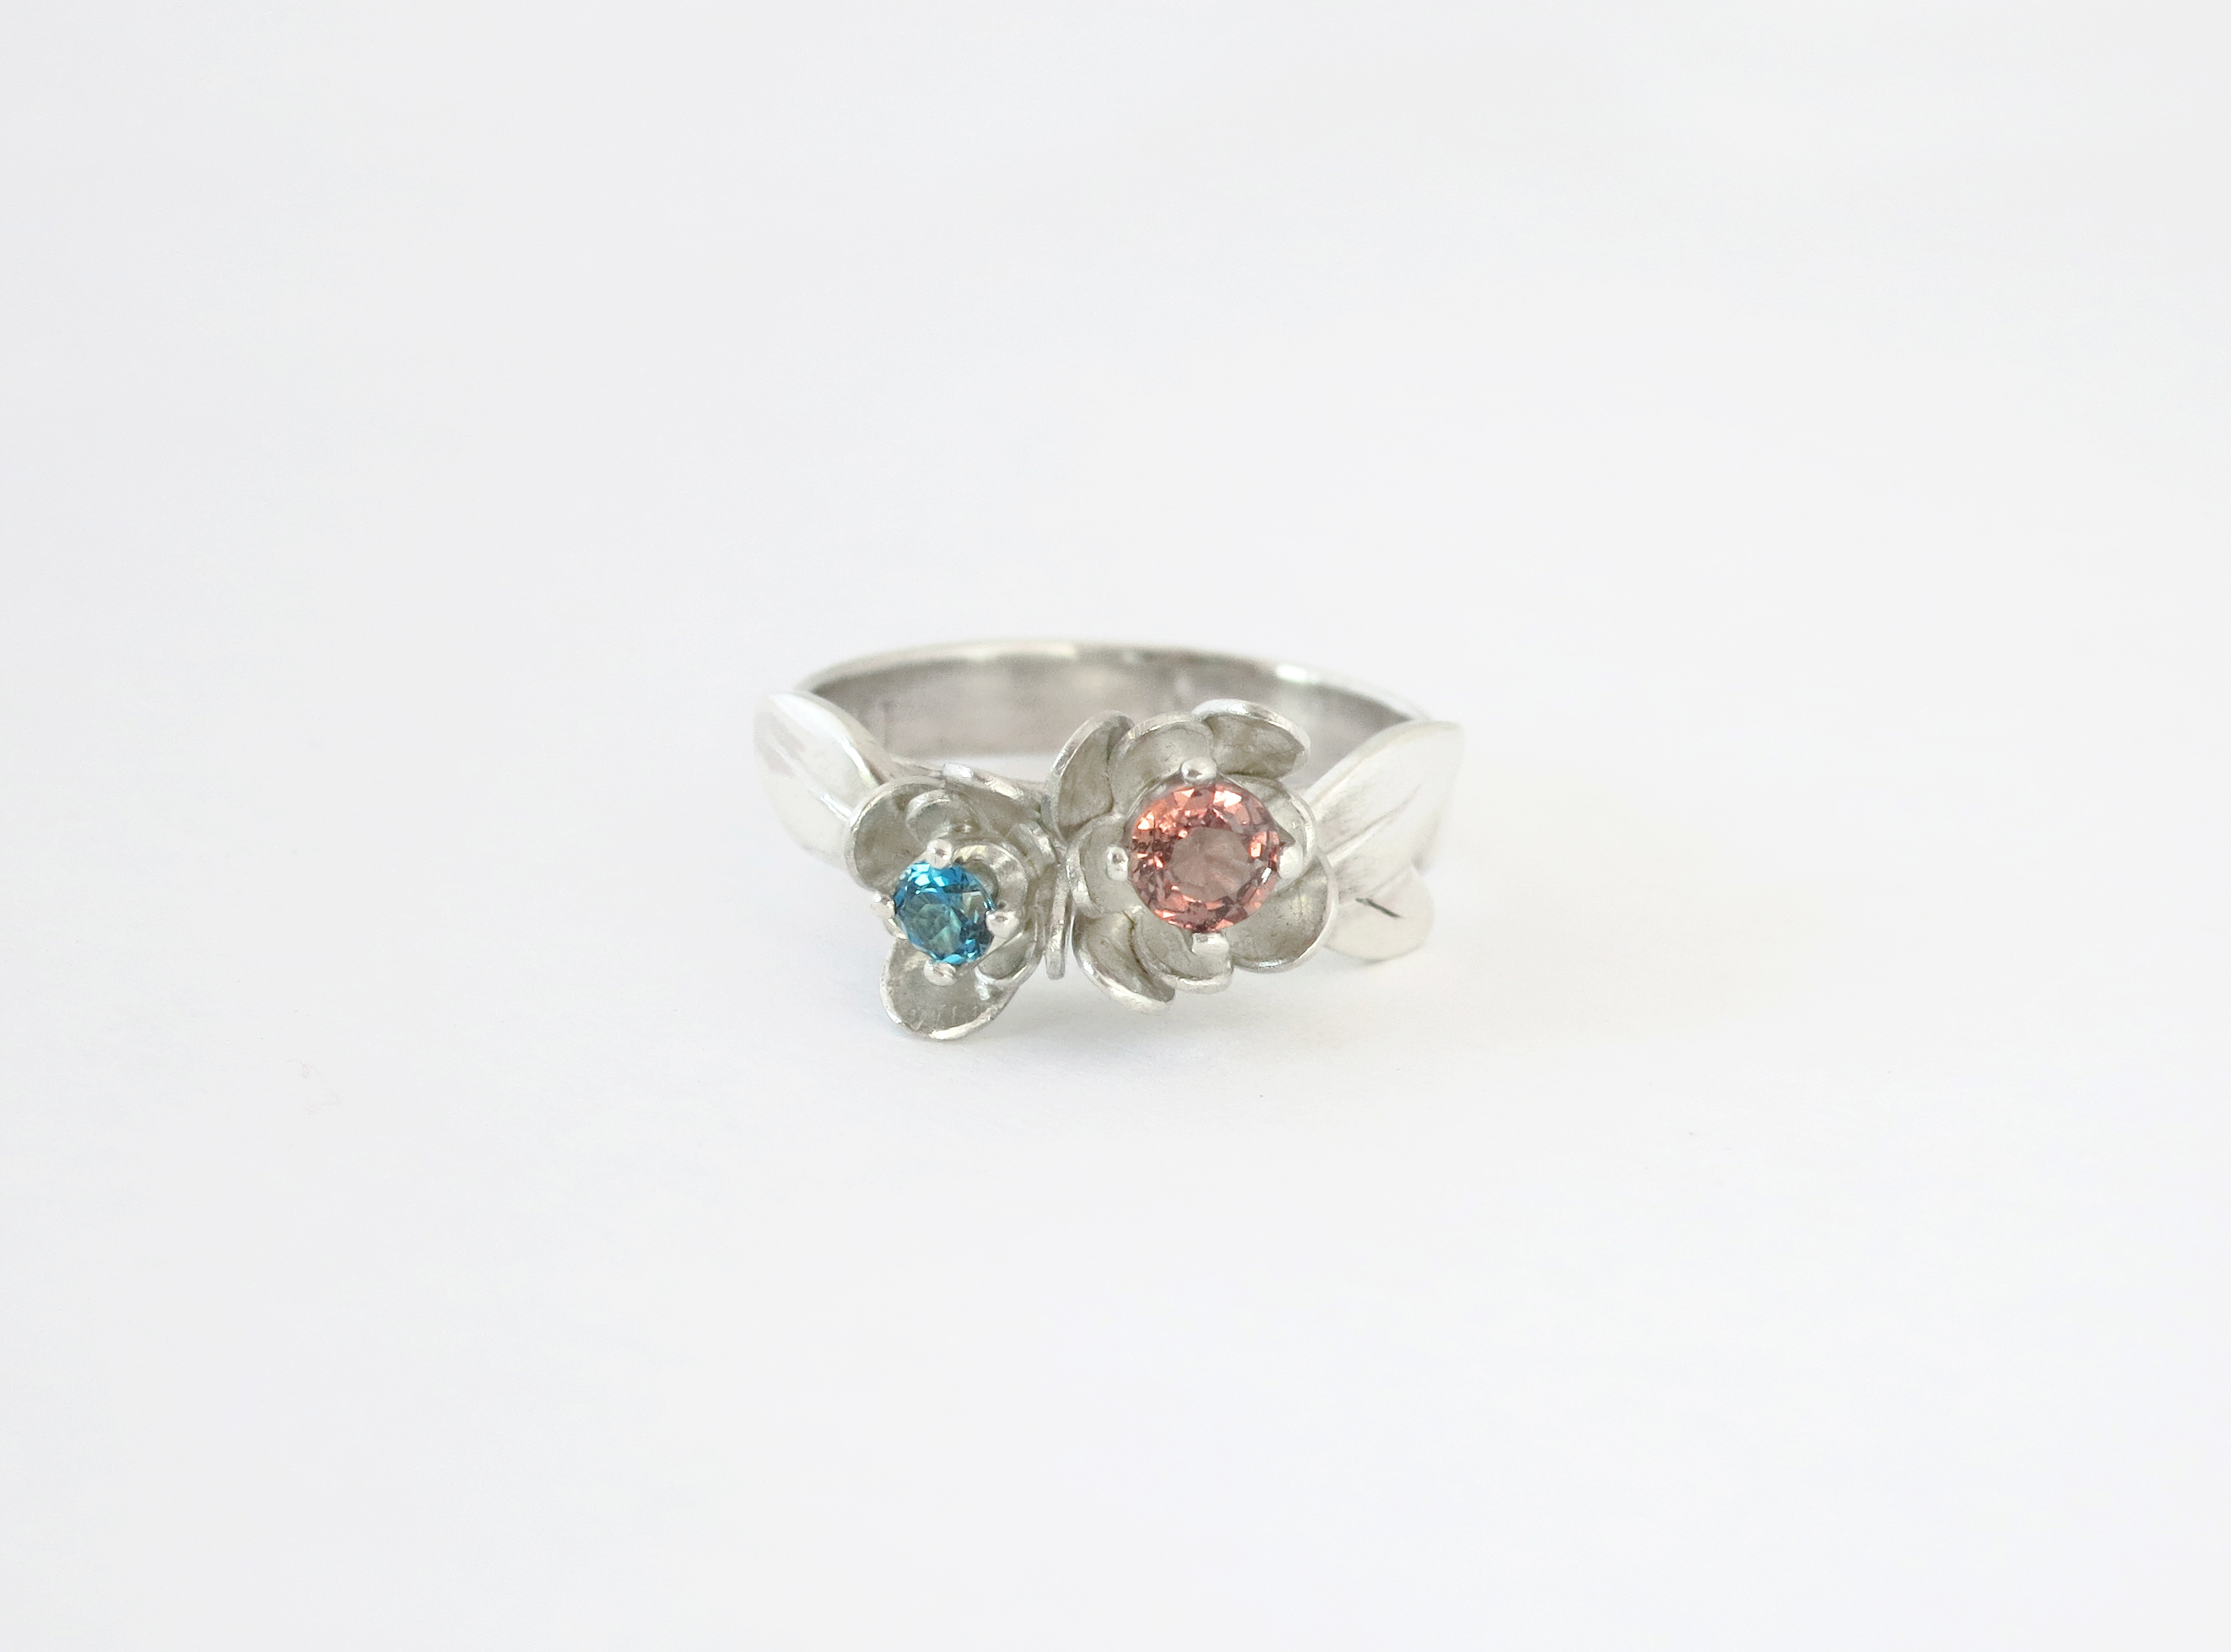 Engagement flower ring in sterling silver with pink sapphire and blue topaz